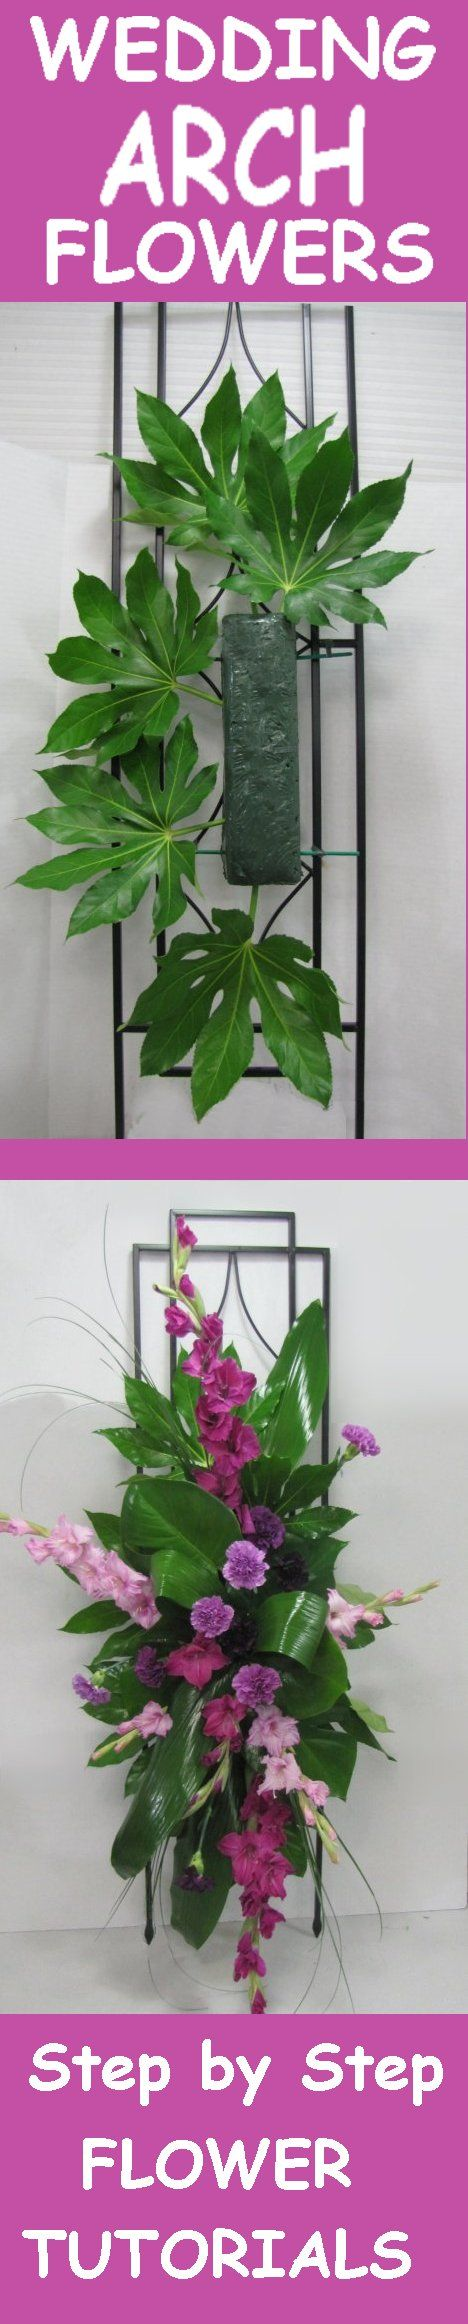 Wedding arch flowers free picture tutorials learn how to make wedding arch flowers free picture tutorials learn how to make bridal bouquets wedding corsages junglespirit Image collections